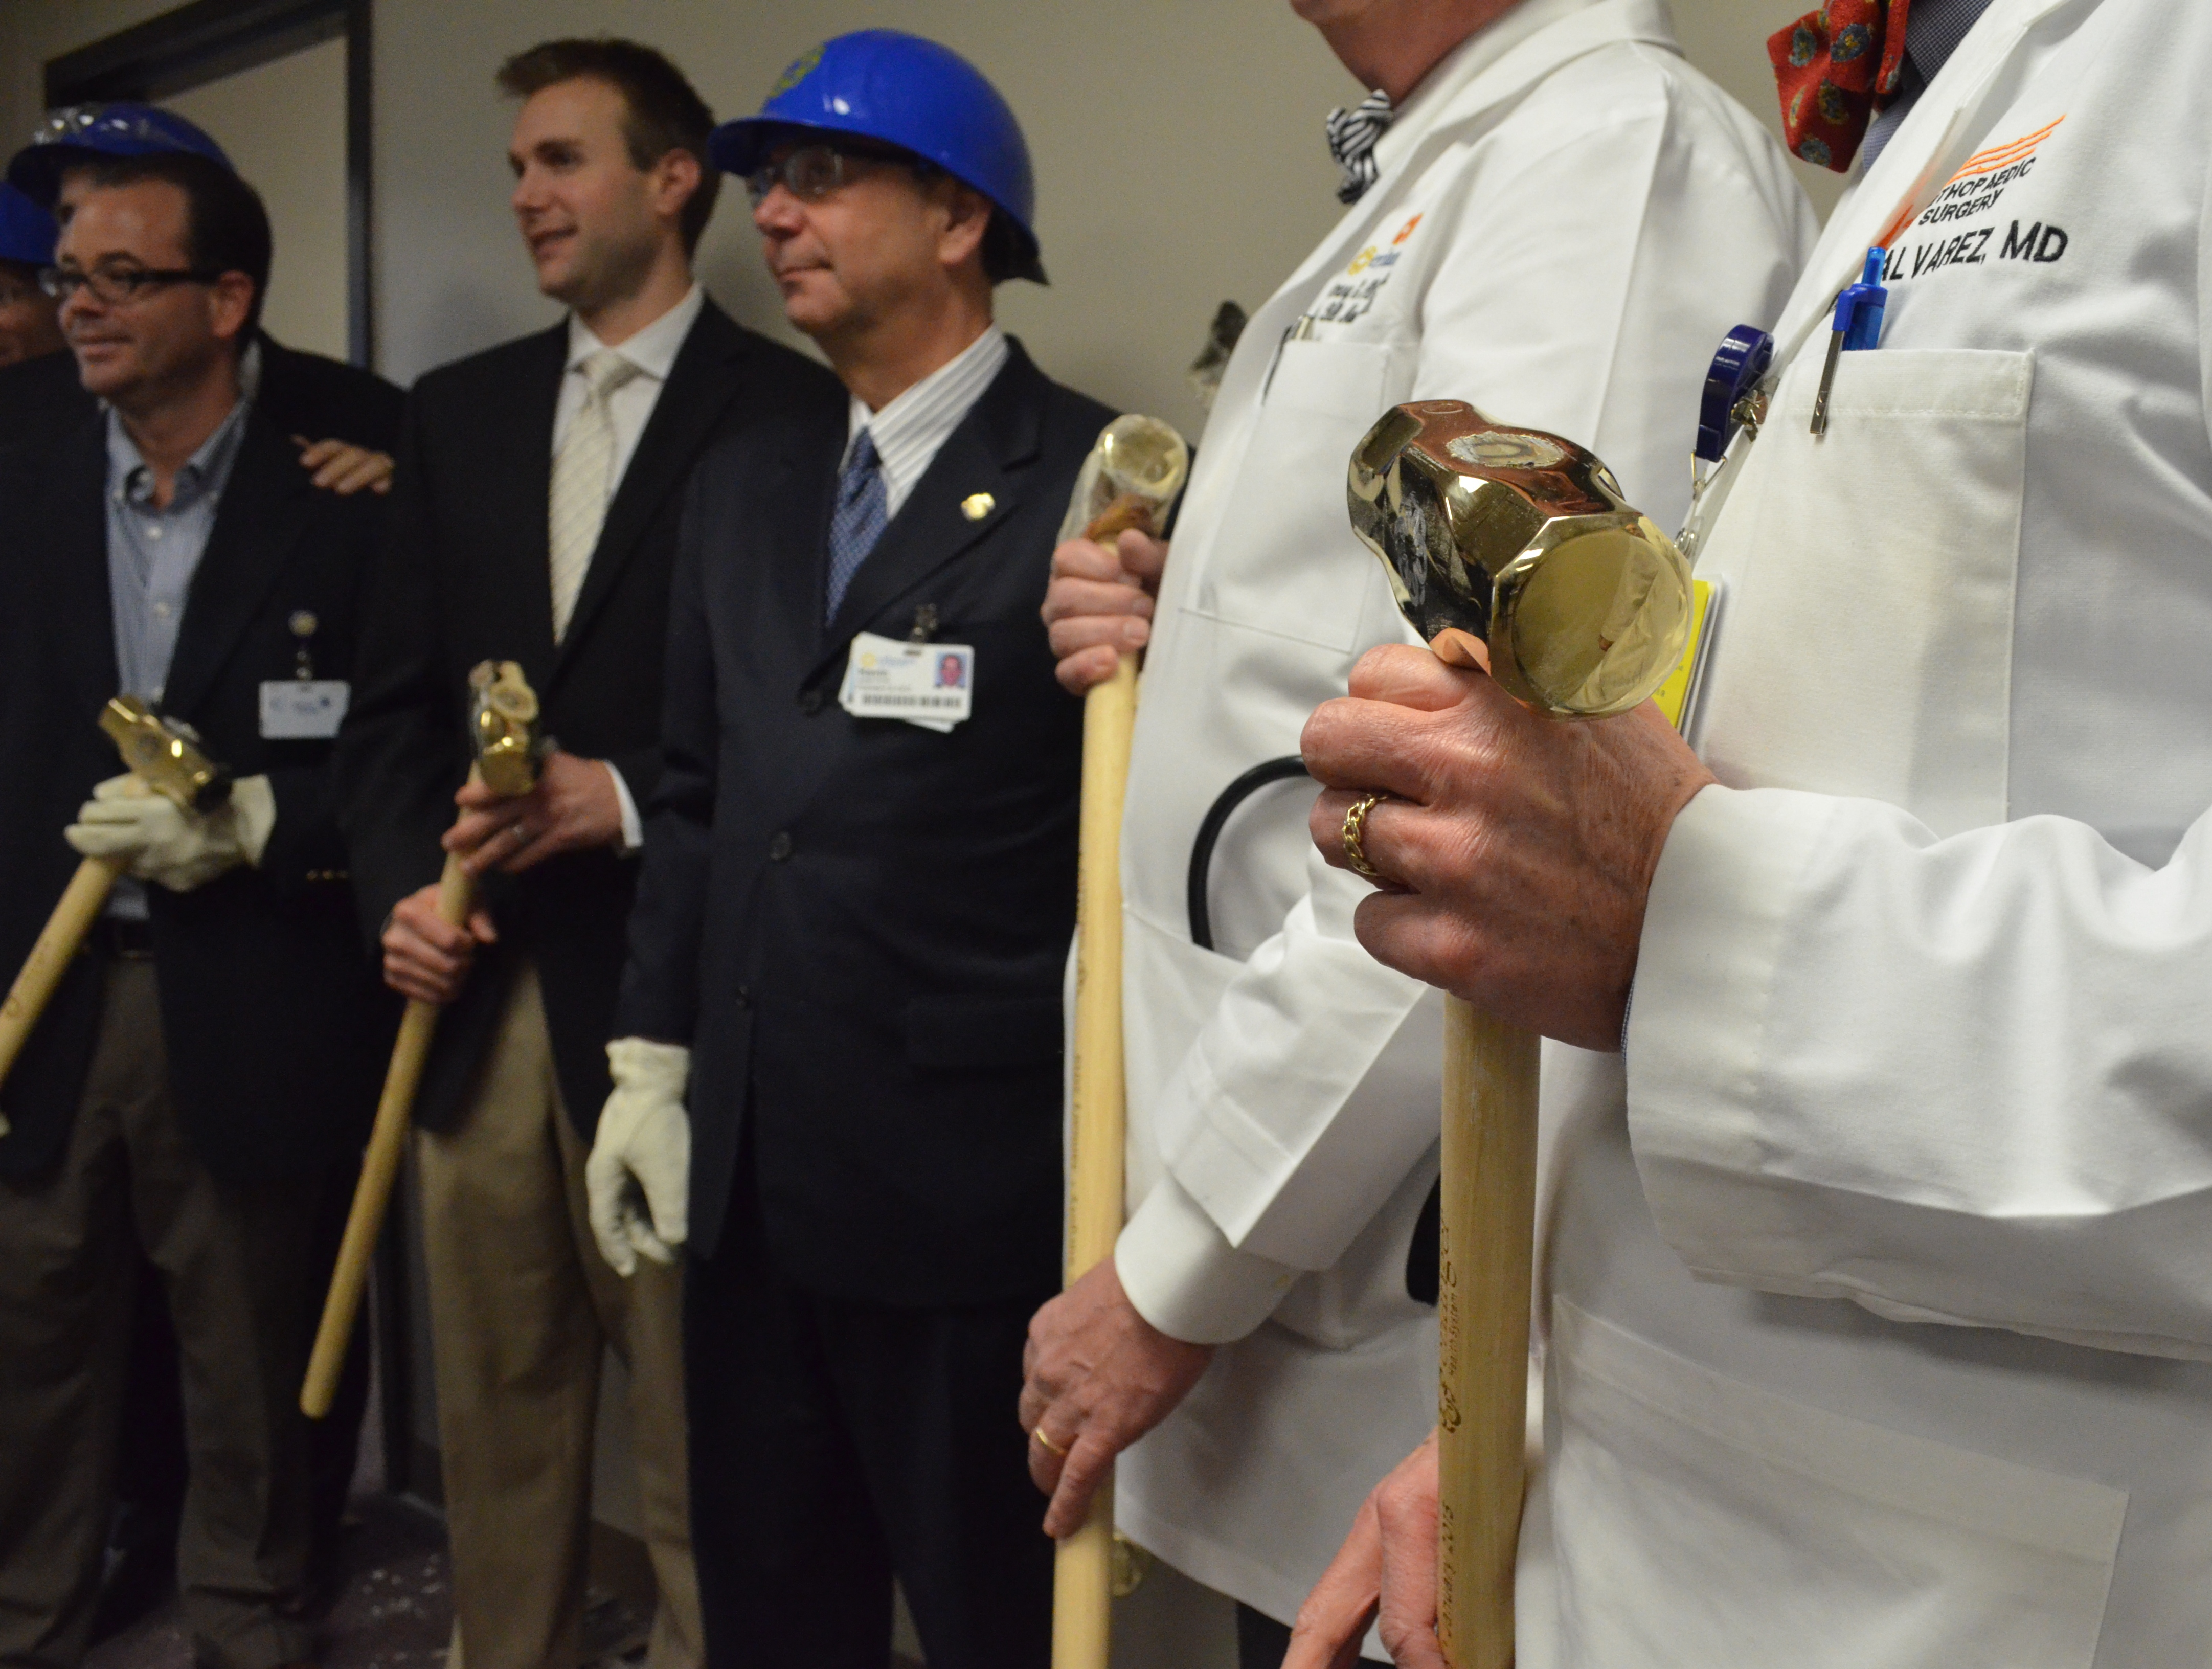 Erlanger doctors, executives 'tear down the wall' for new orthopedic center